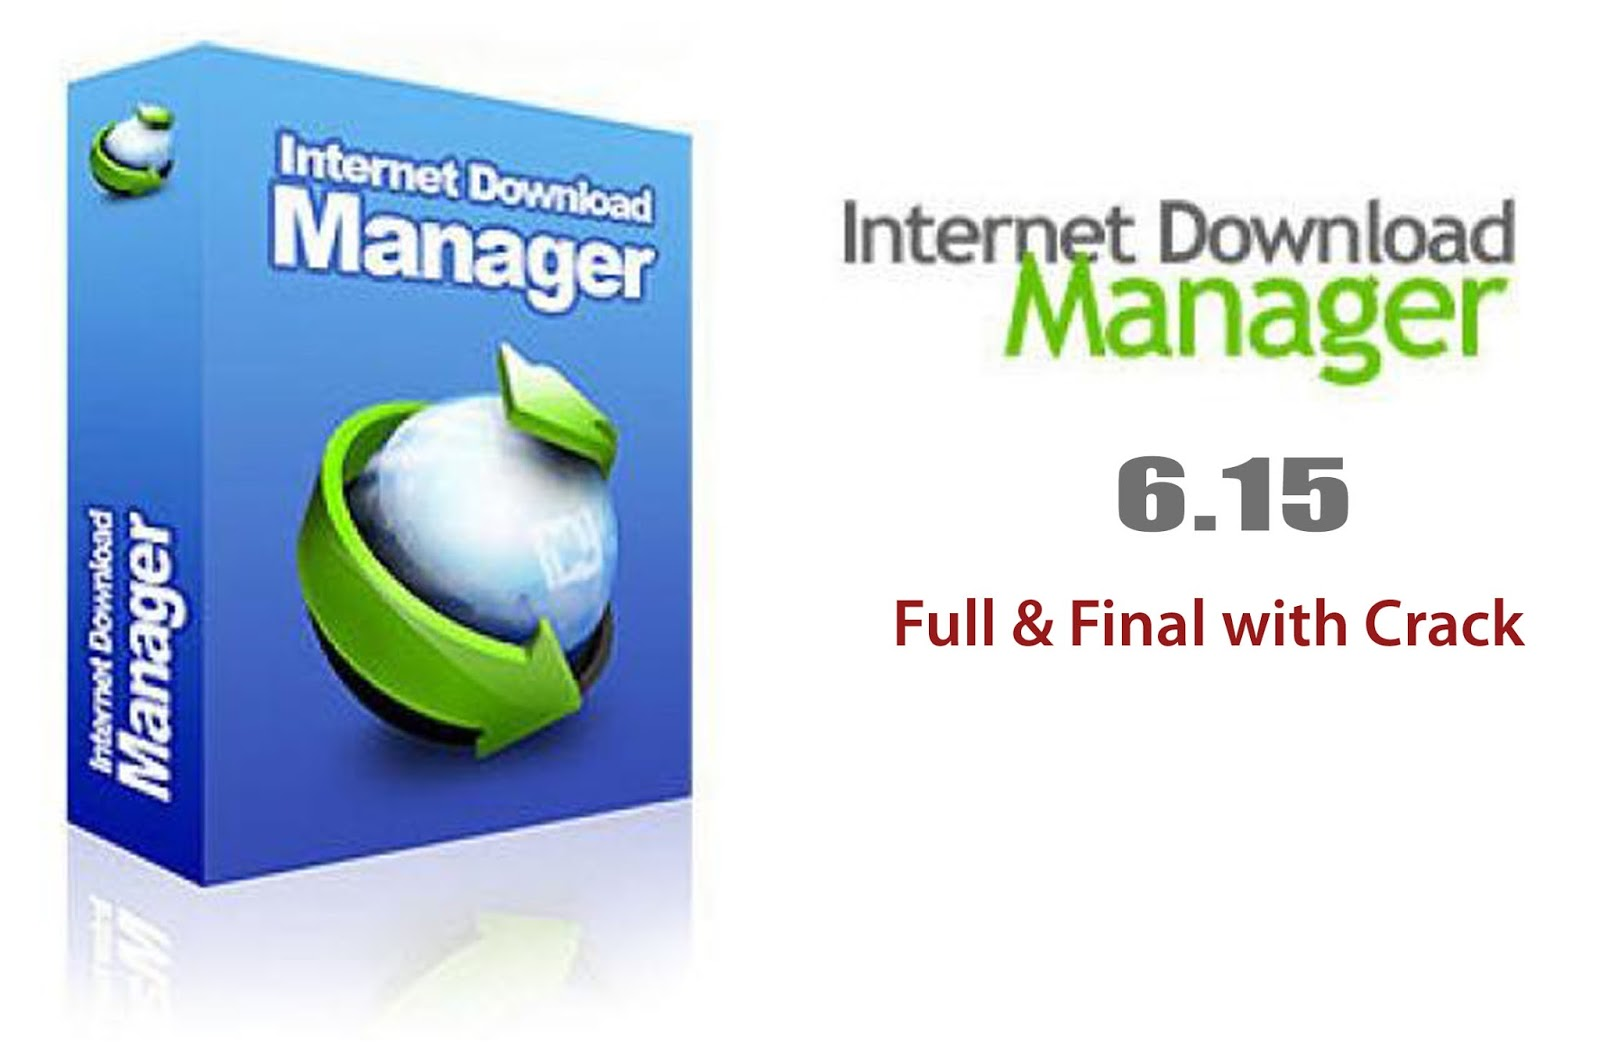 Internet download manager with crack file free download